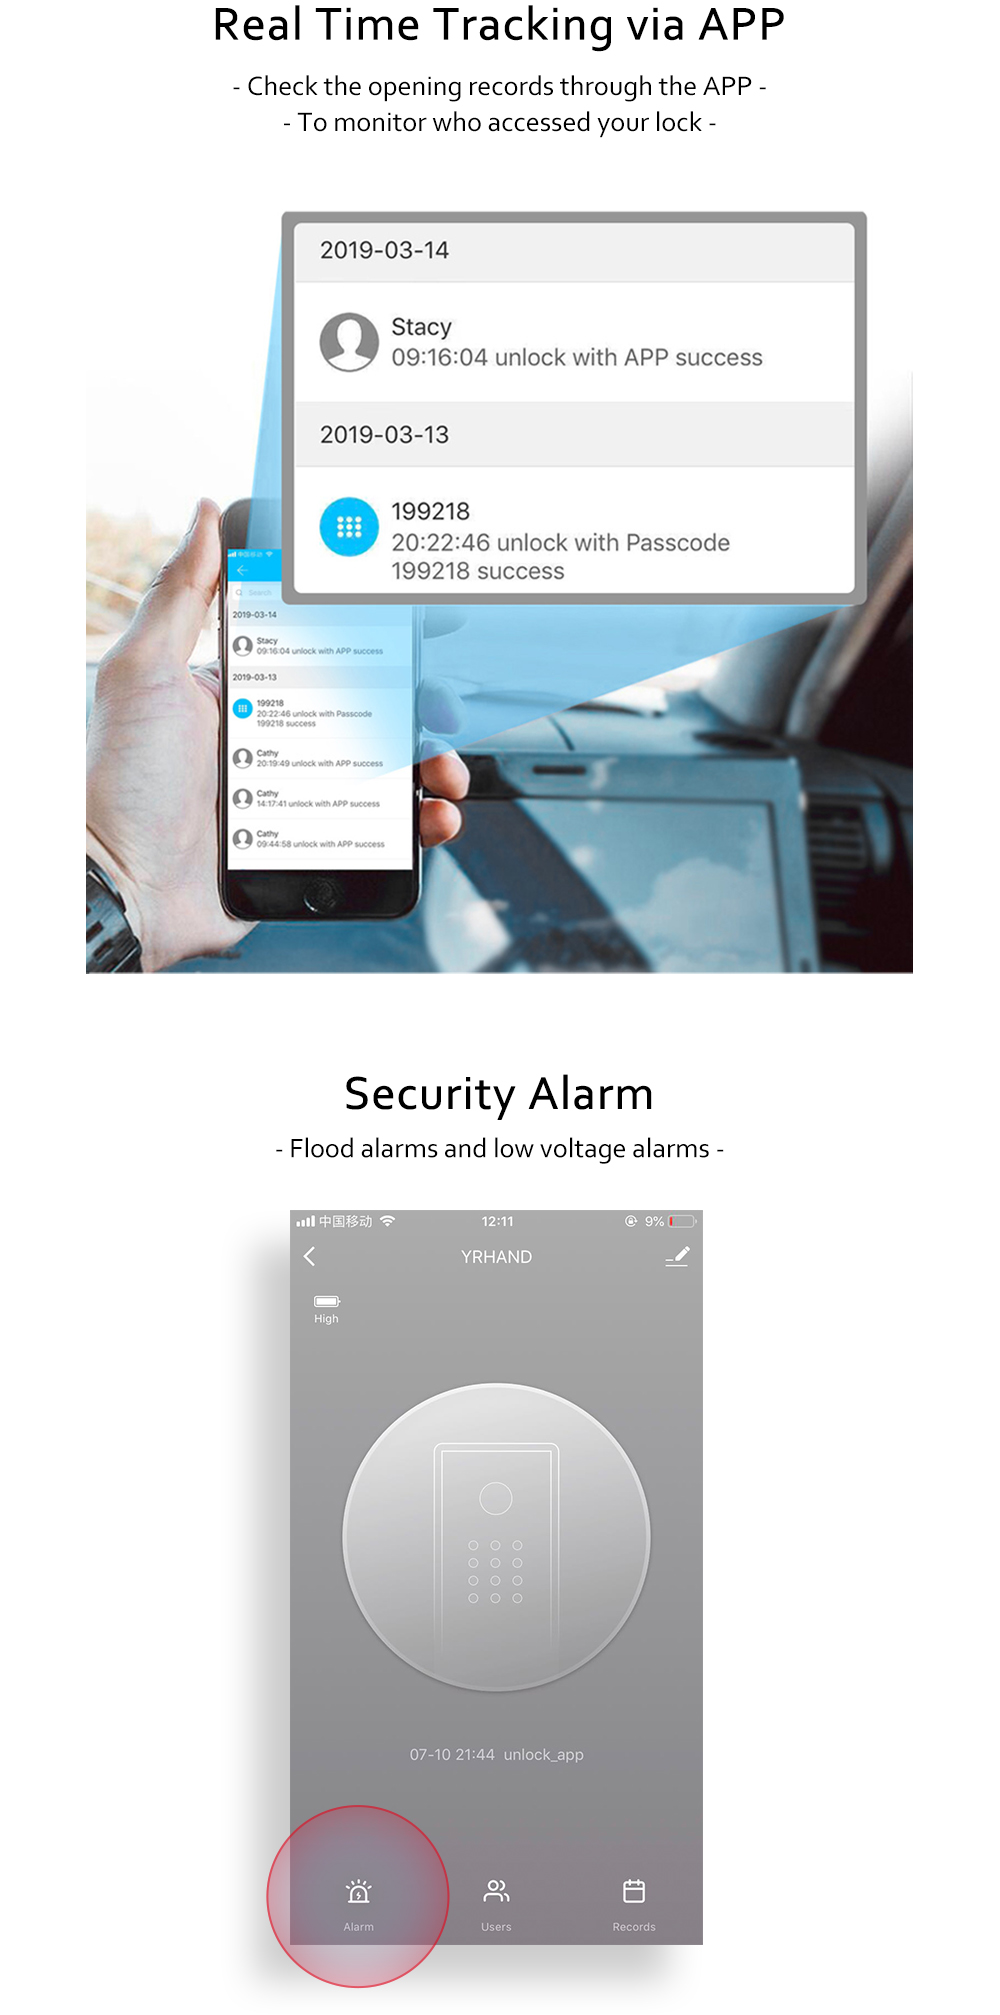 YRHAND Biometric Smart Fingerprint Lock Pad for Intelligent Security With WiFi and Password Protected 12